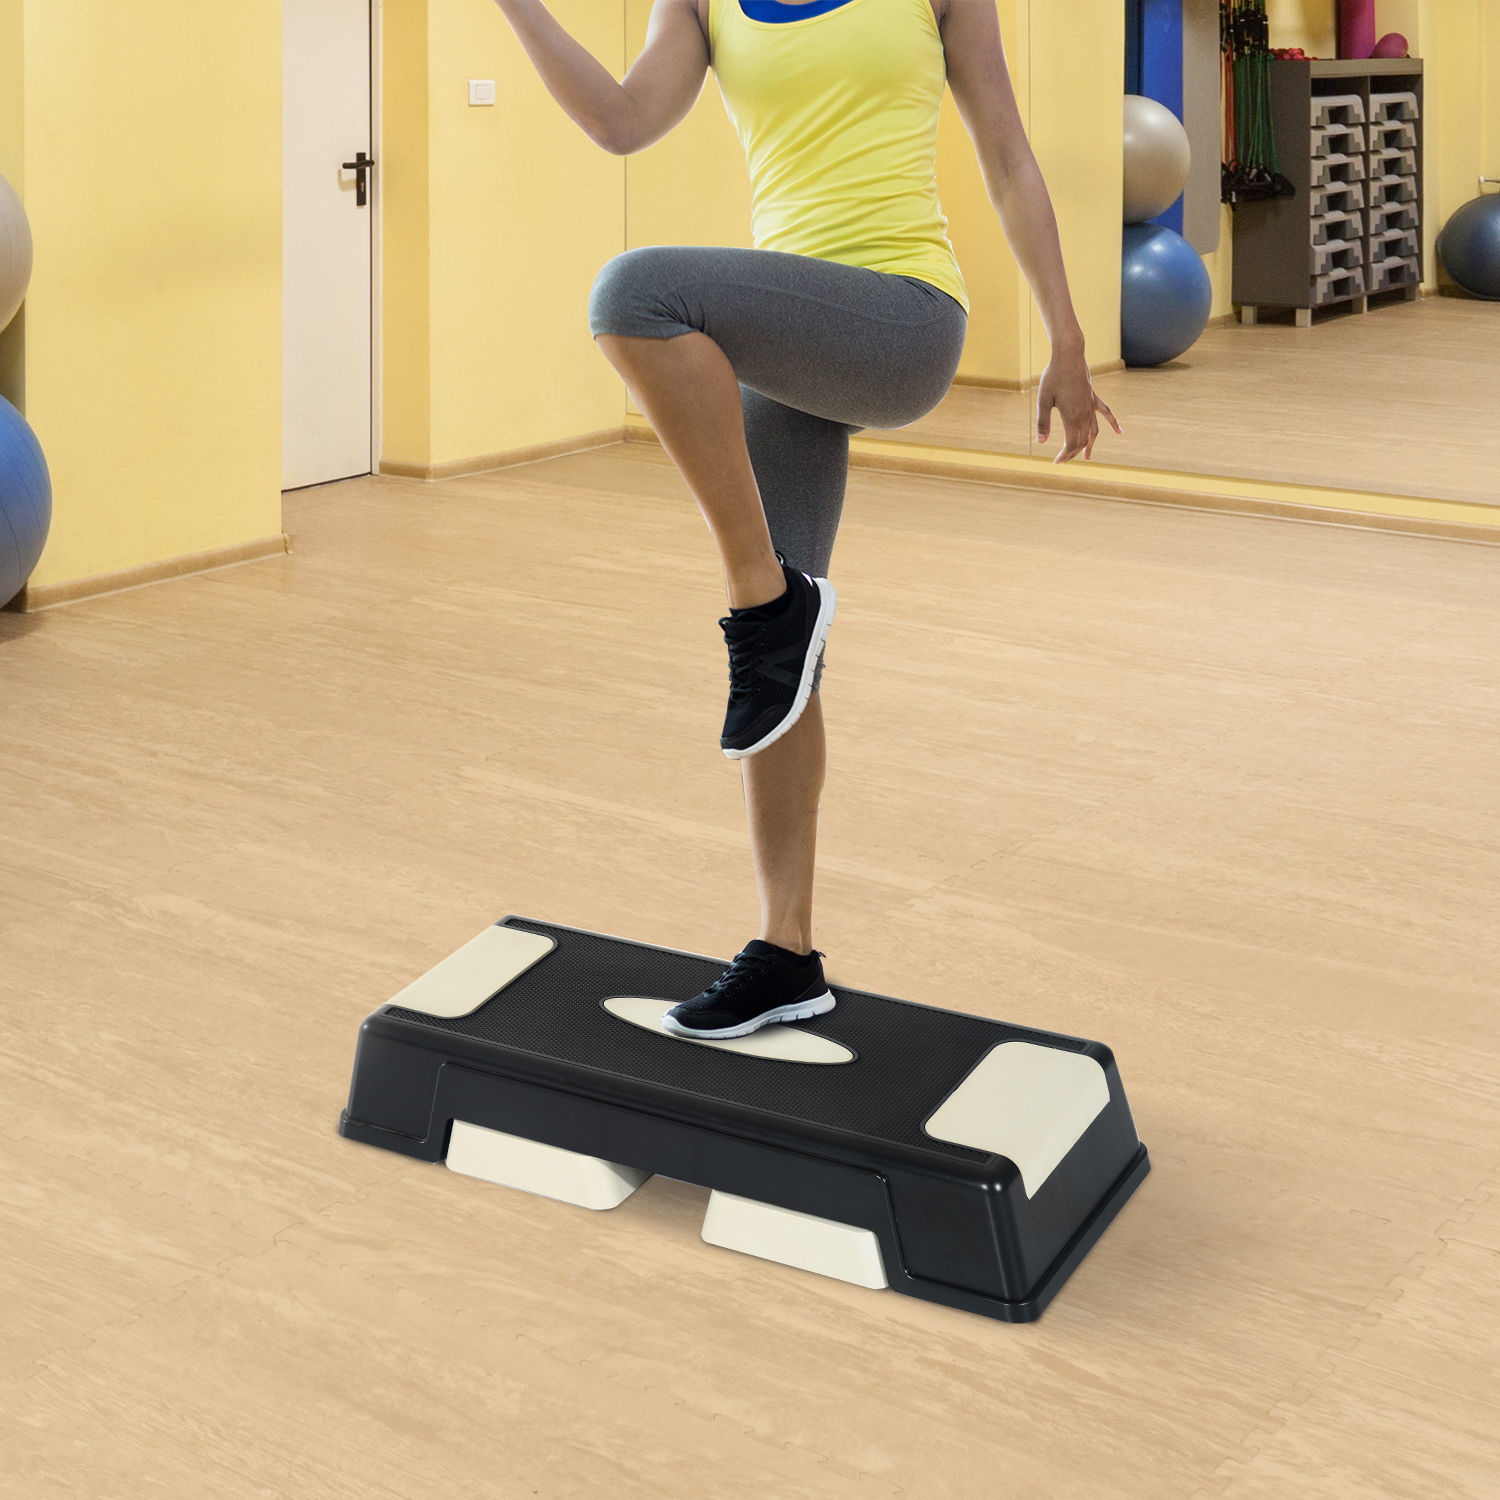 3 Levels Aerobic Stepper Adjustable Fitness Exercise Board